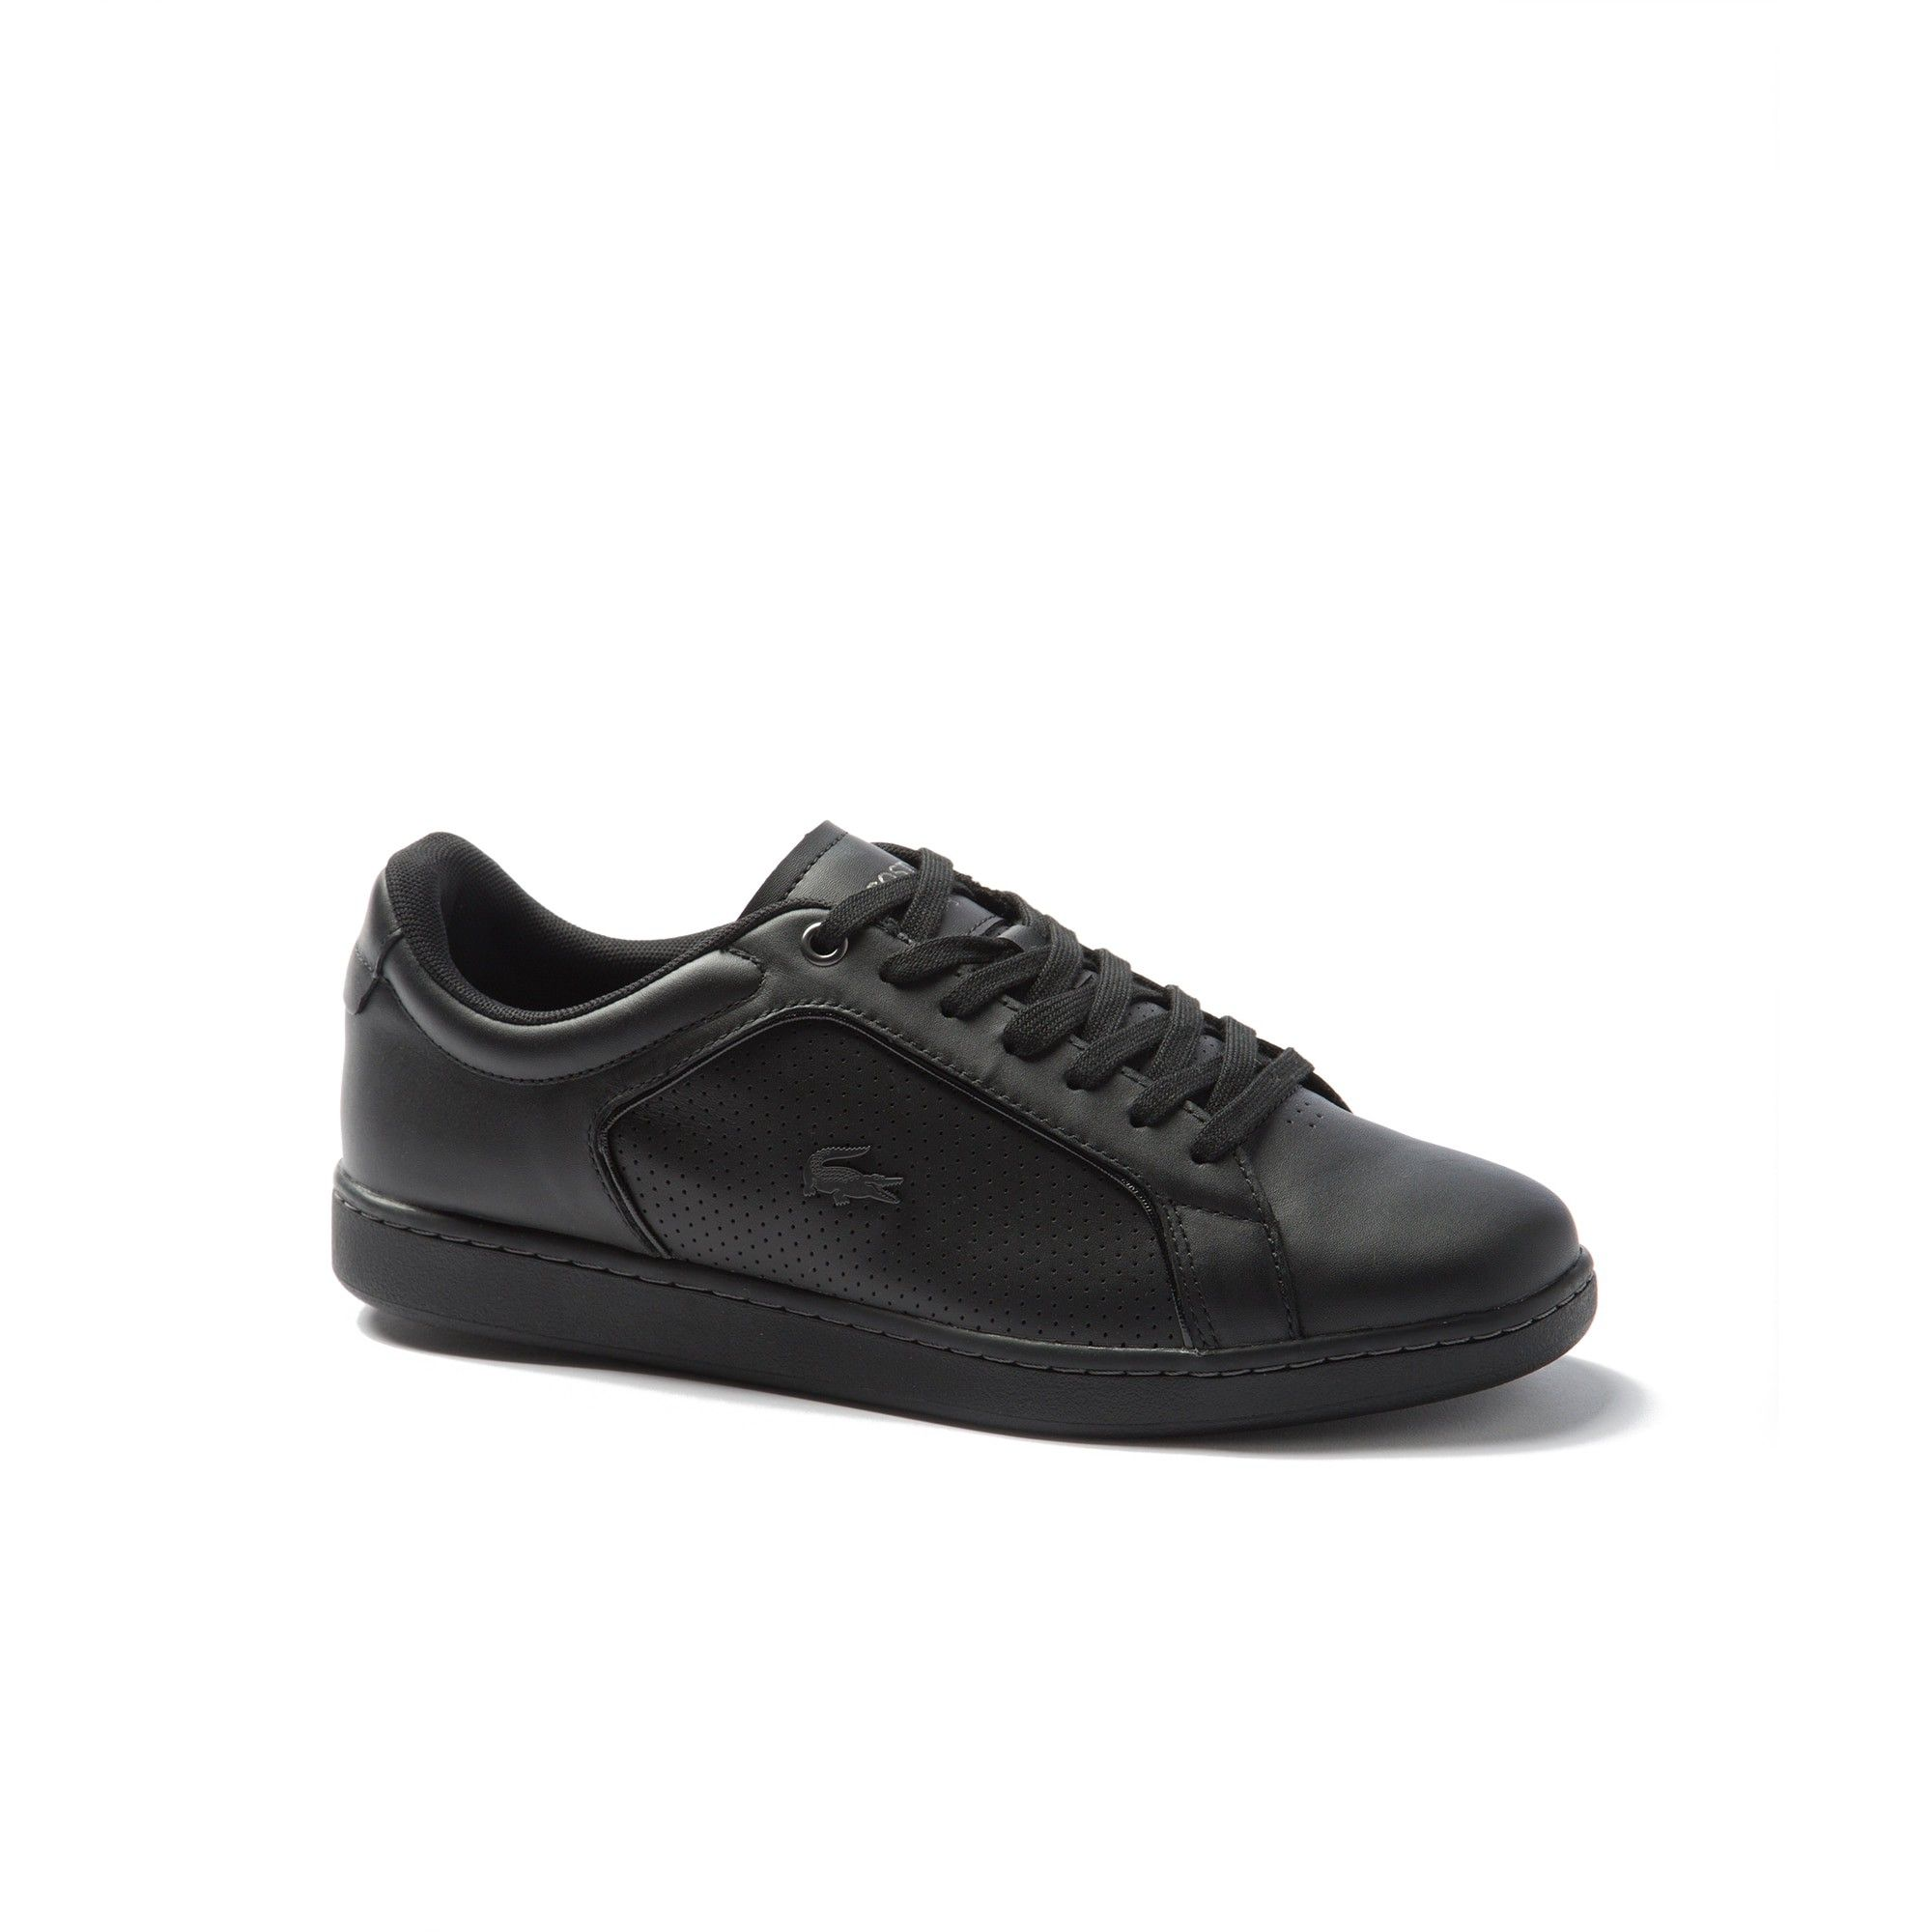 2fd58457fb3e LACOSTE Men s Carnaby Evo Leather Sneakers - blk blk.  lacoste  shoes